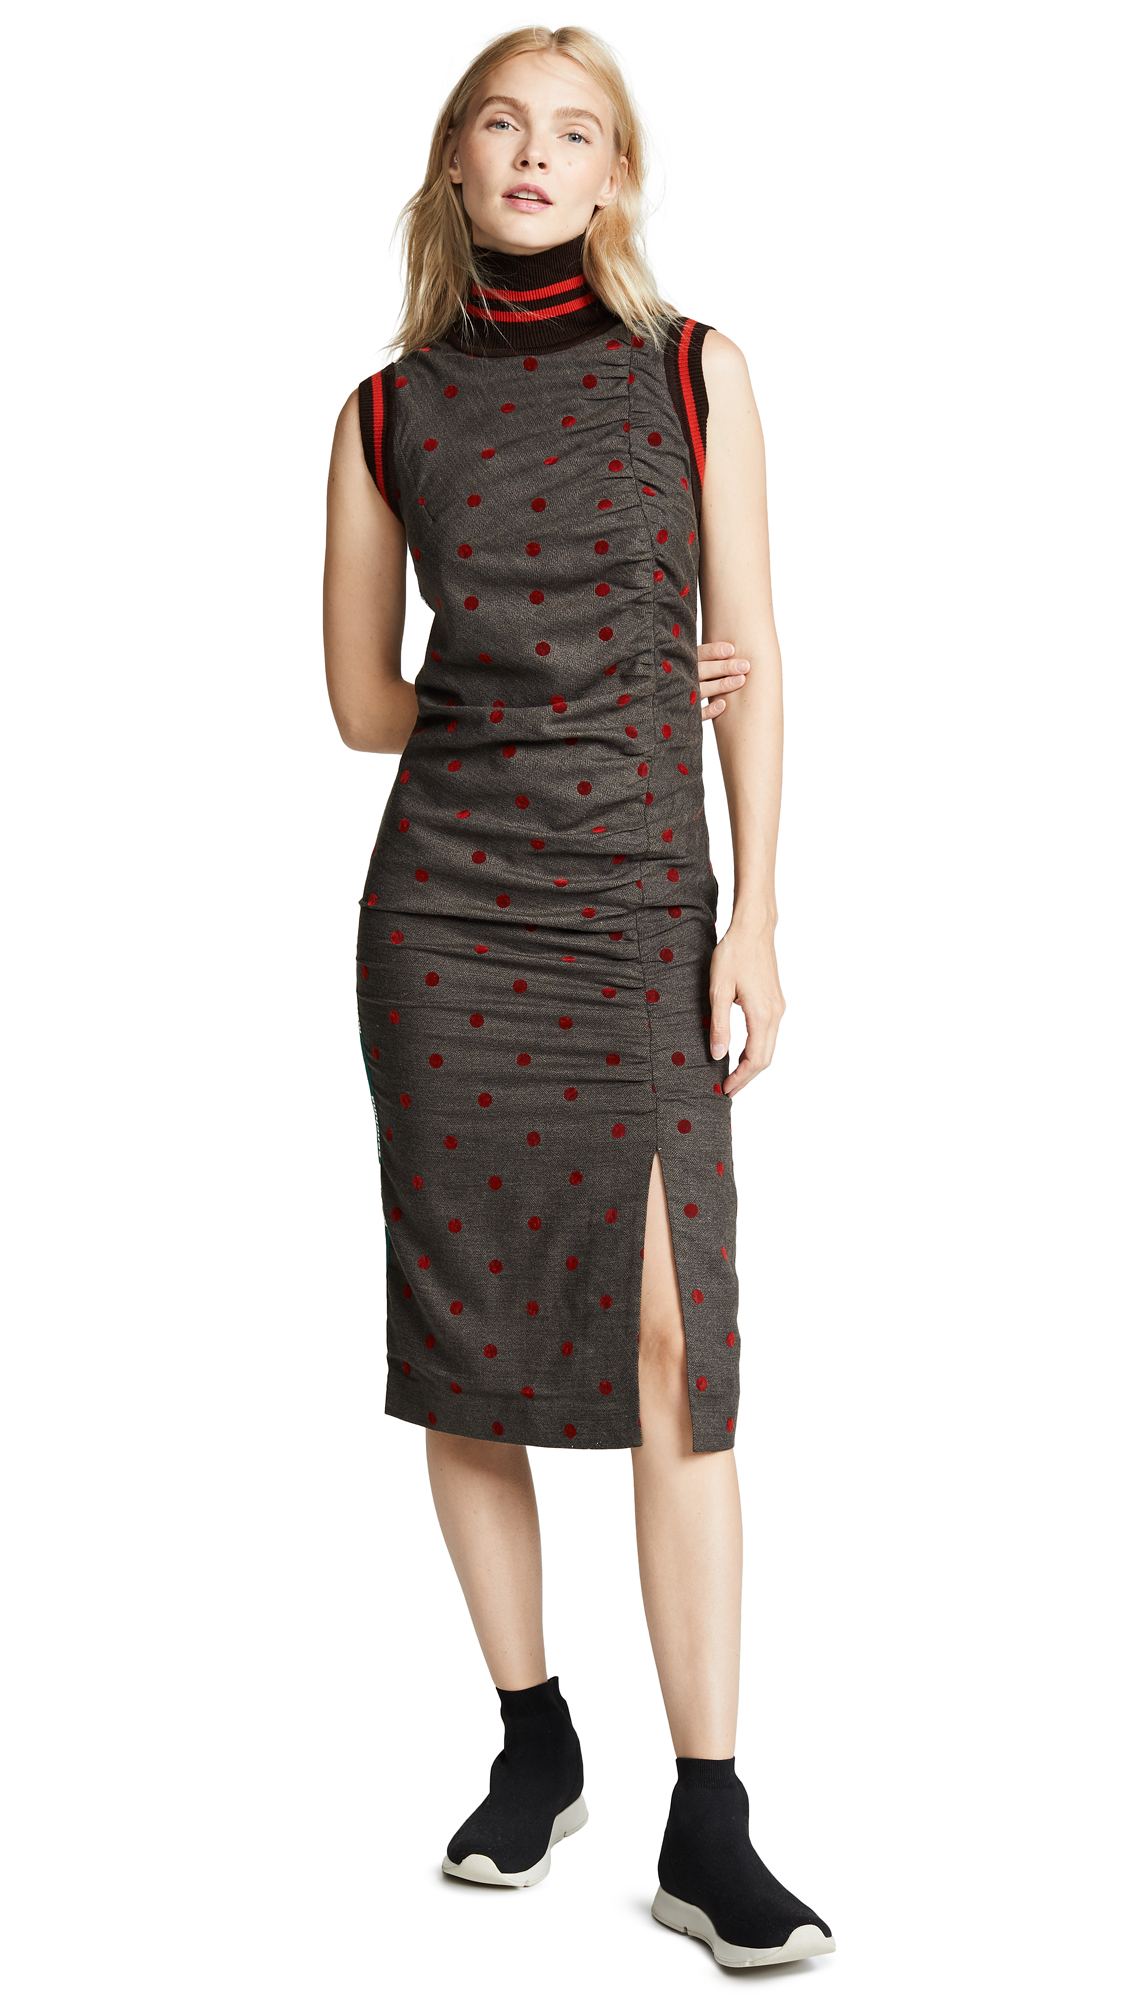 Marianna Senchina Sport Stripe Dress In Brown With Red Polka Dot